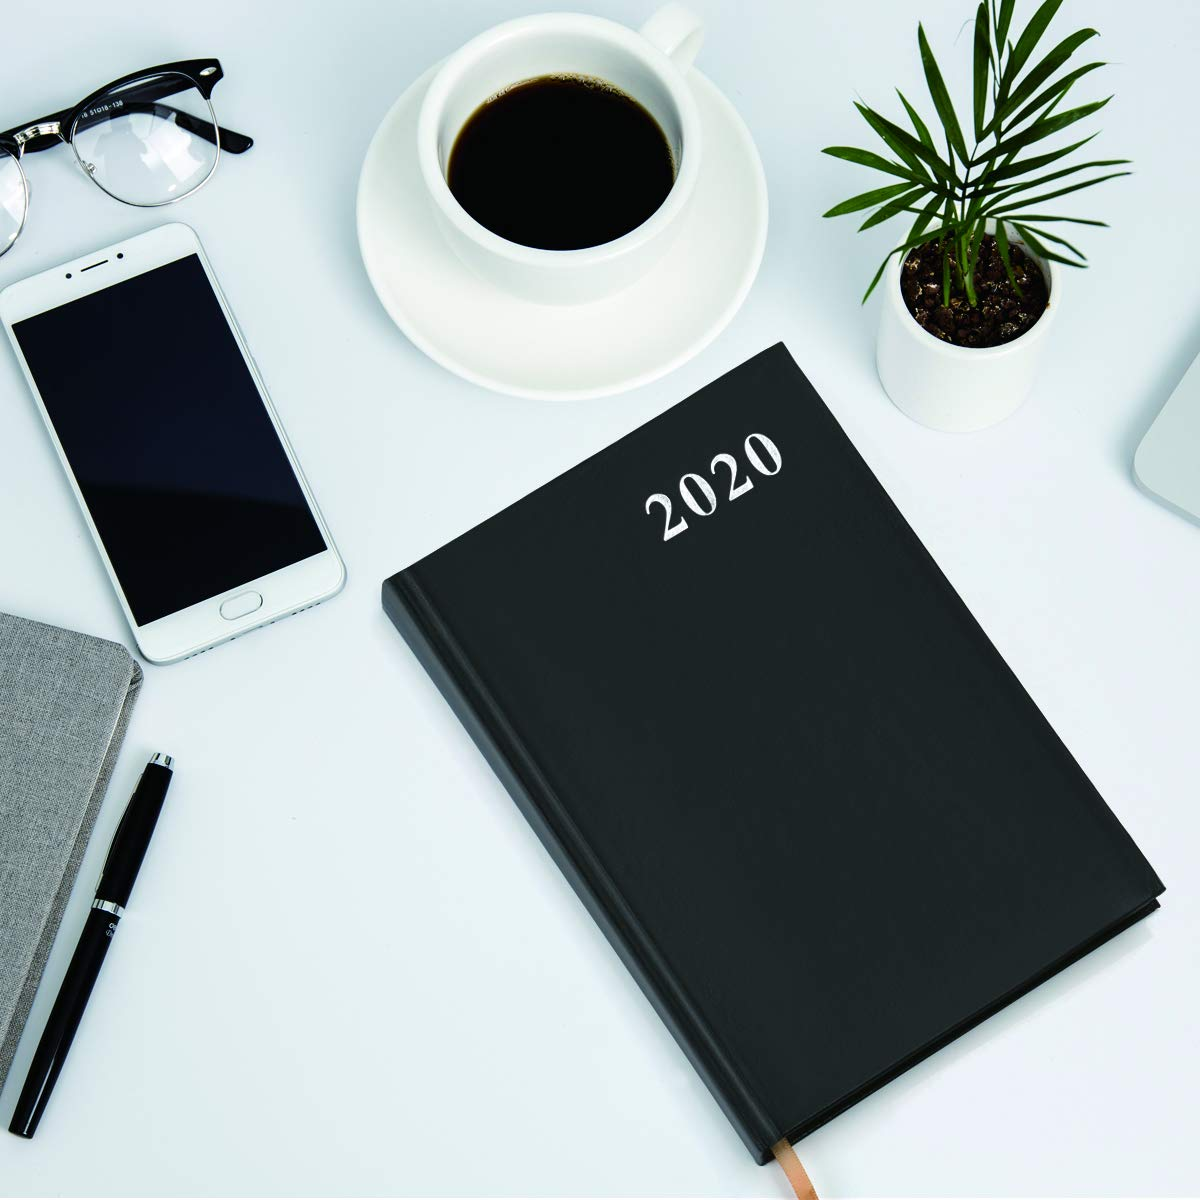 2020 Planner Faux Leather Daily Weekly Monthly Yearly Planners for Academic Journal Agenda Schedule Organizer and Writing Notebook, 5.8 x 8.3 in